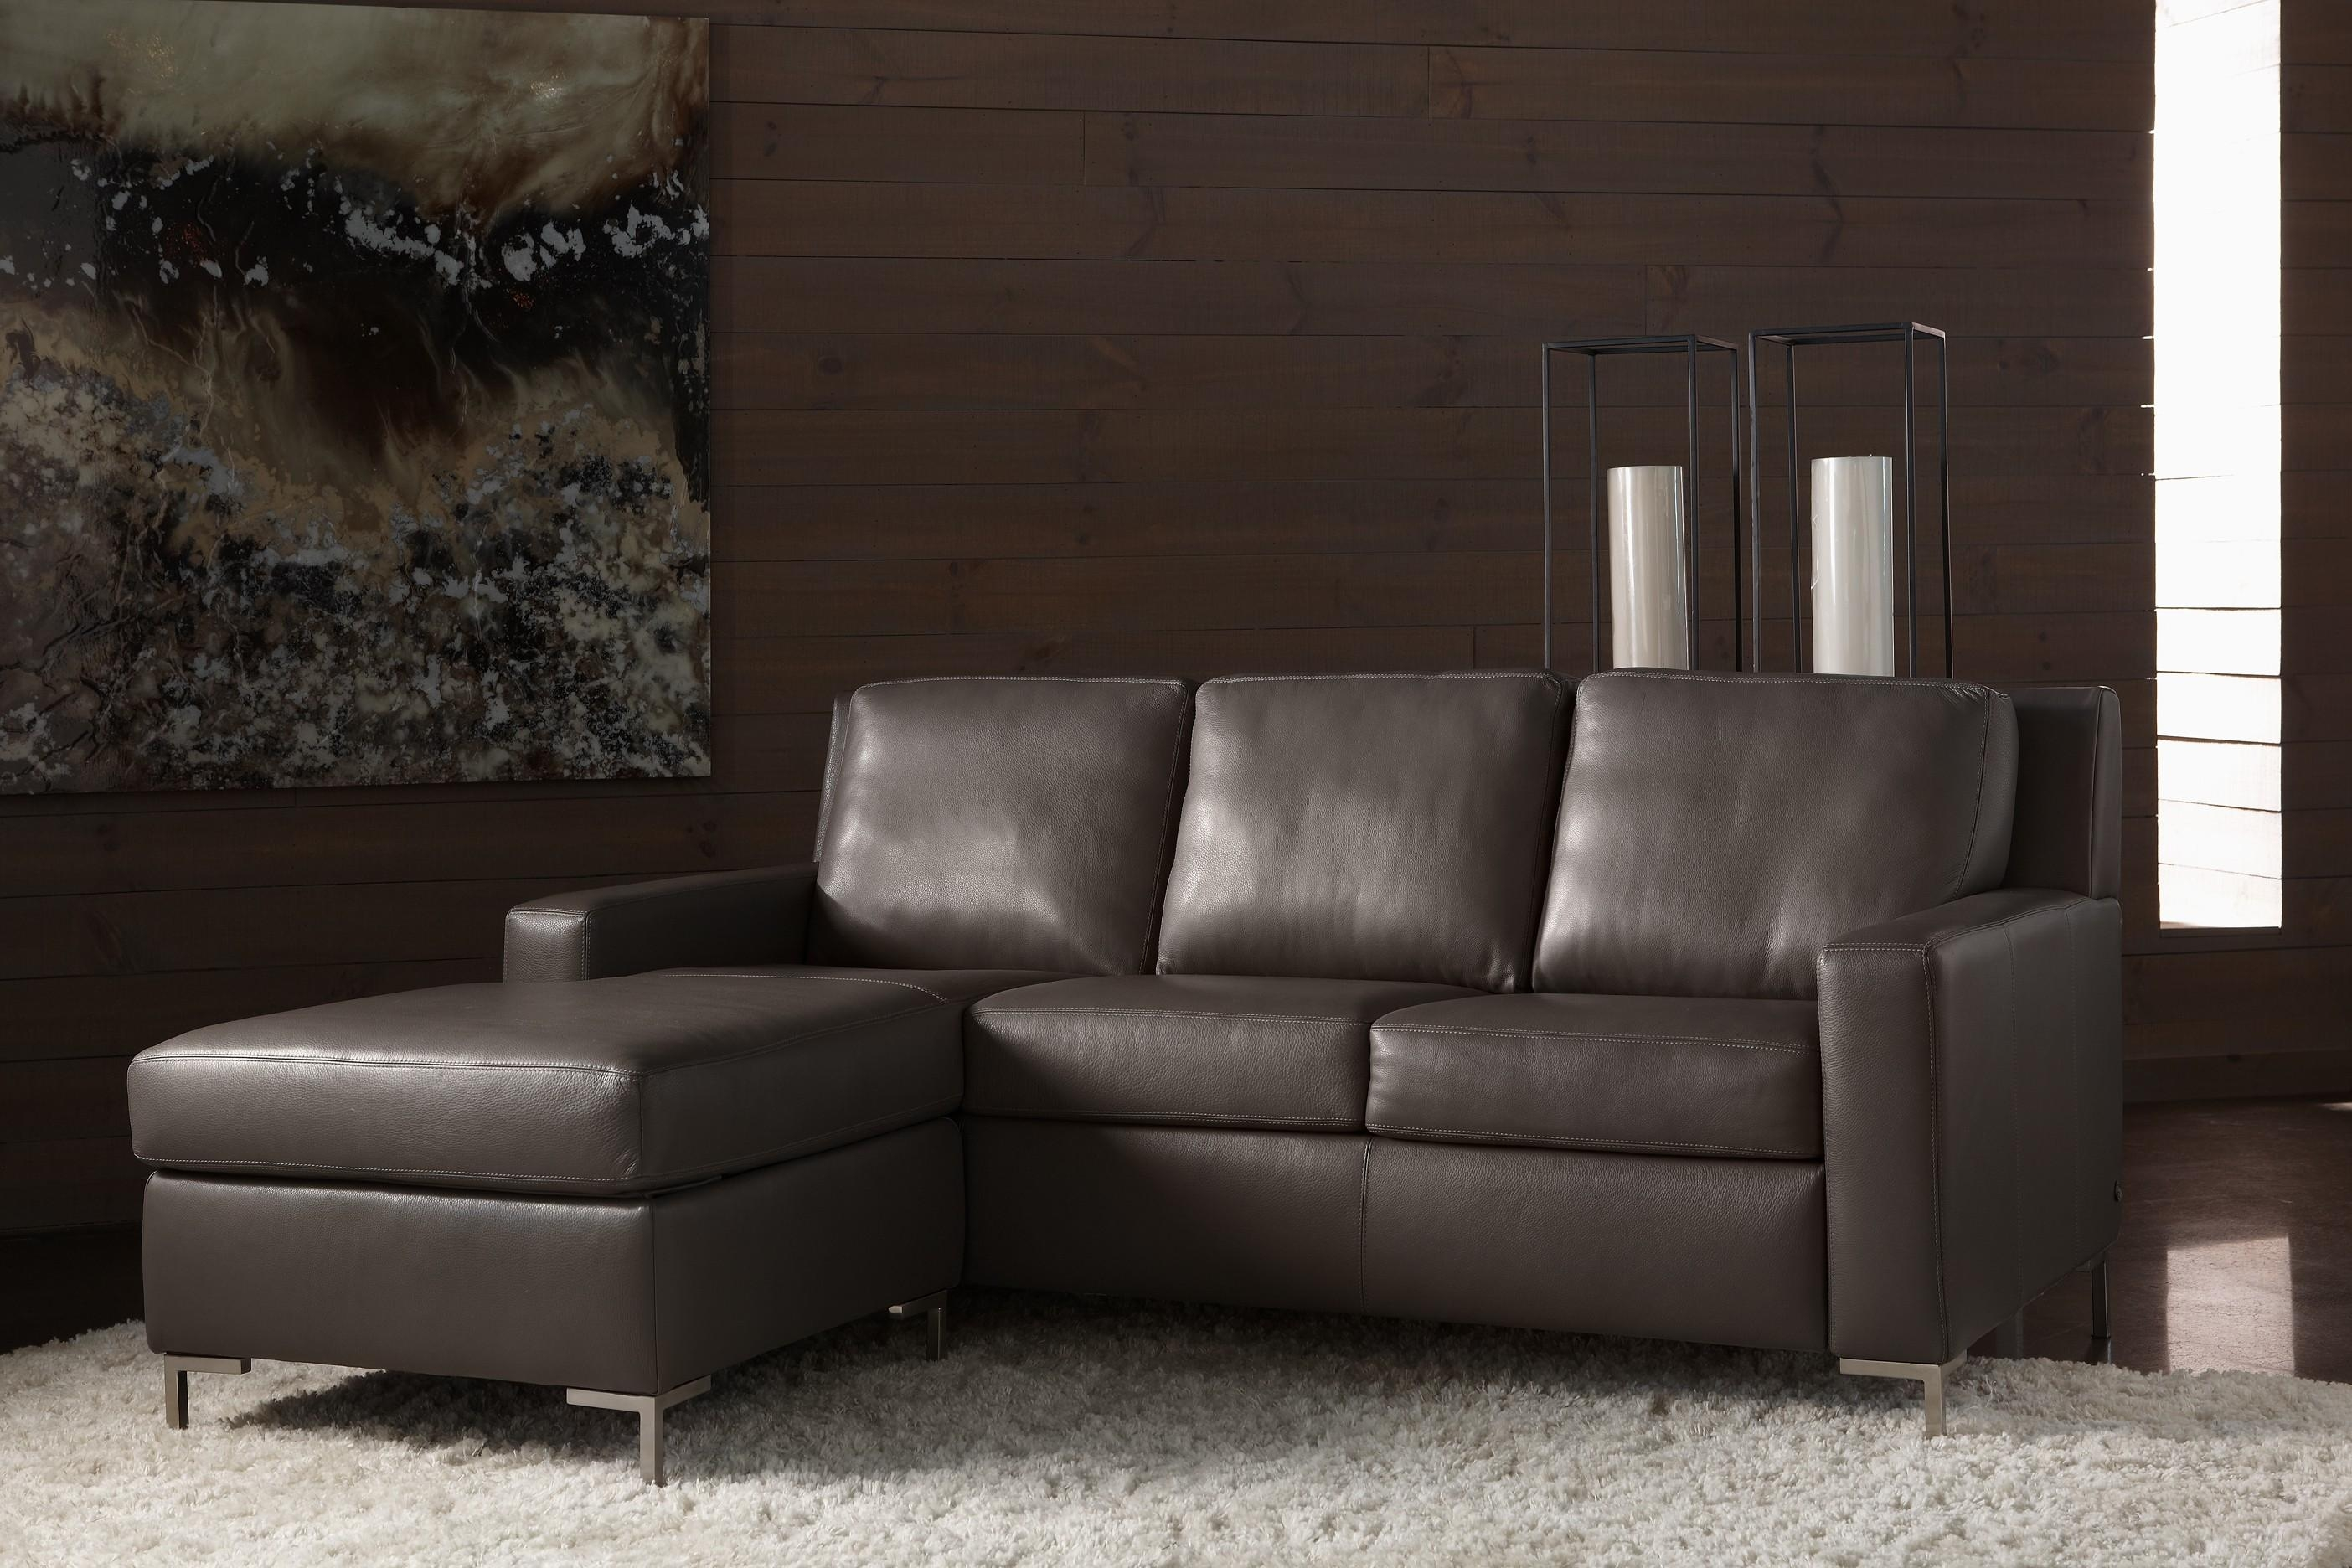 grey sofas leather sectional vs sofa reddit 2018 latest charcoal ideas